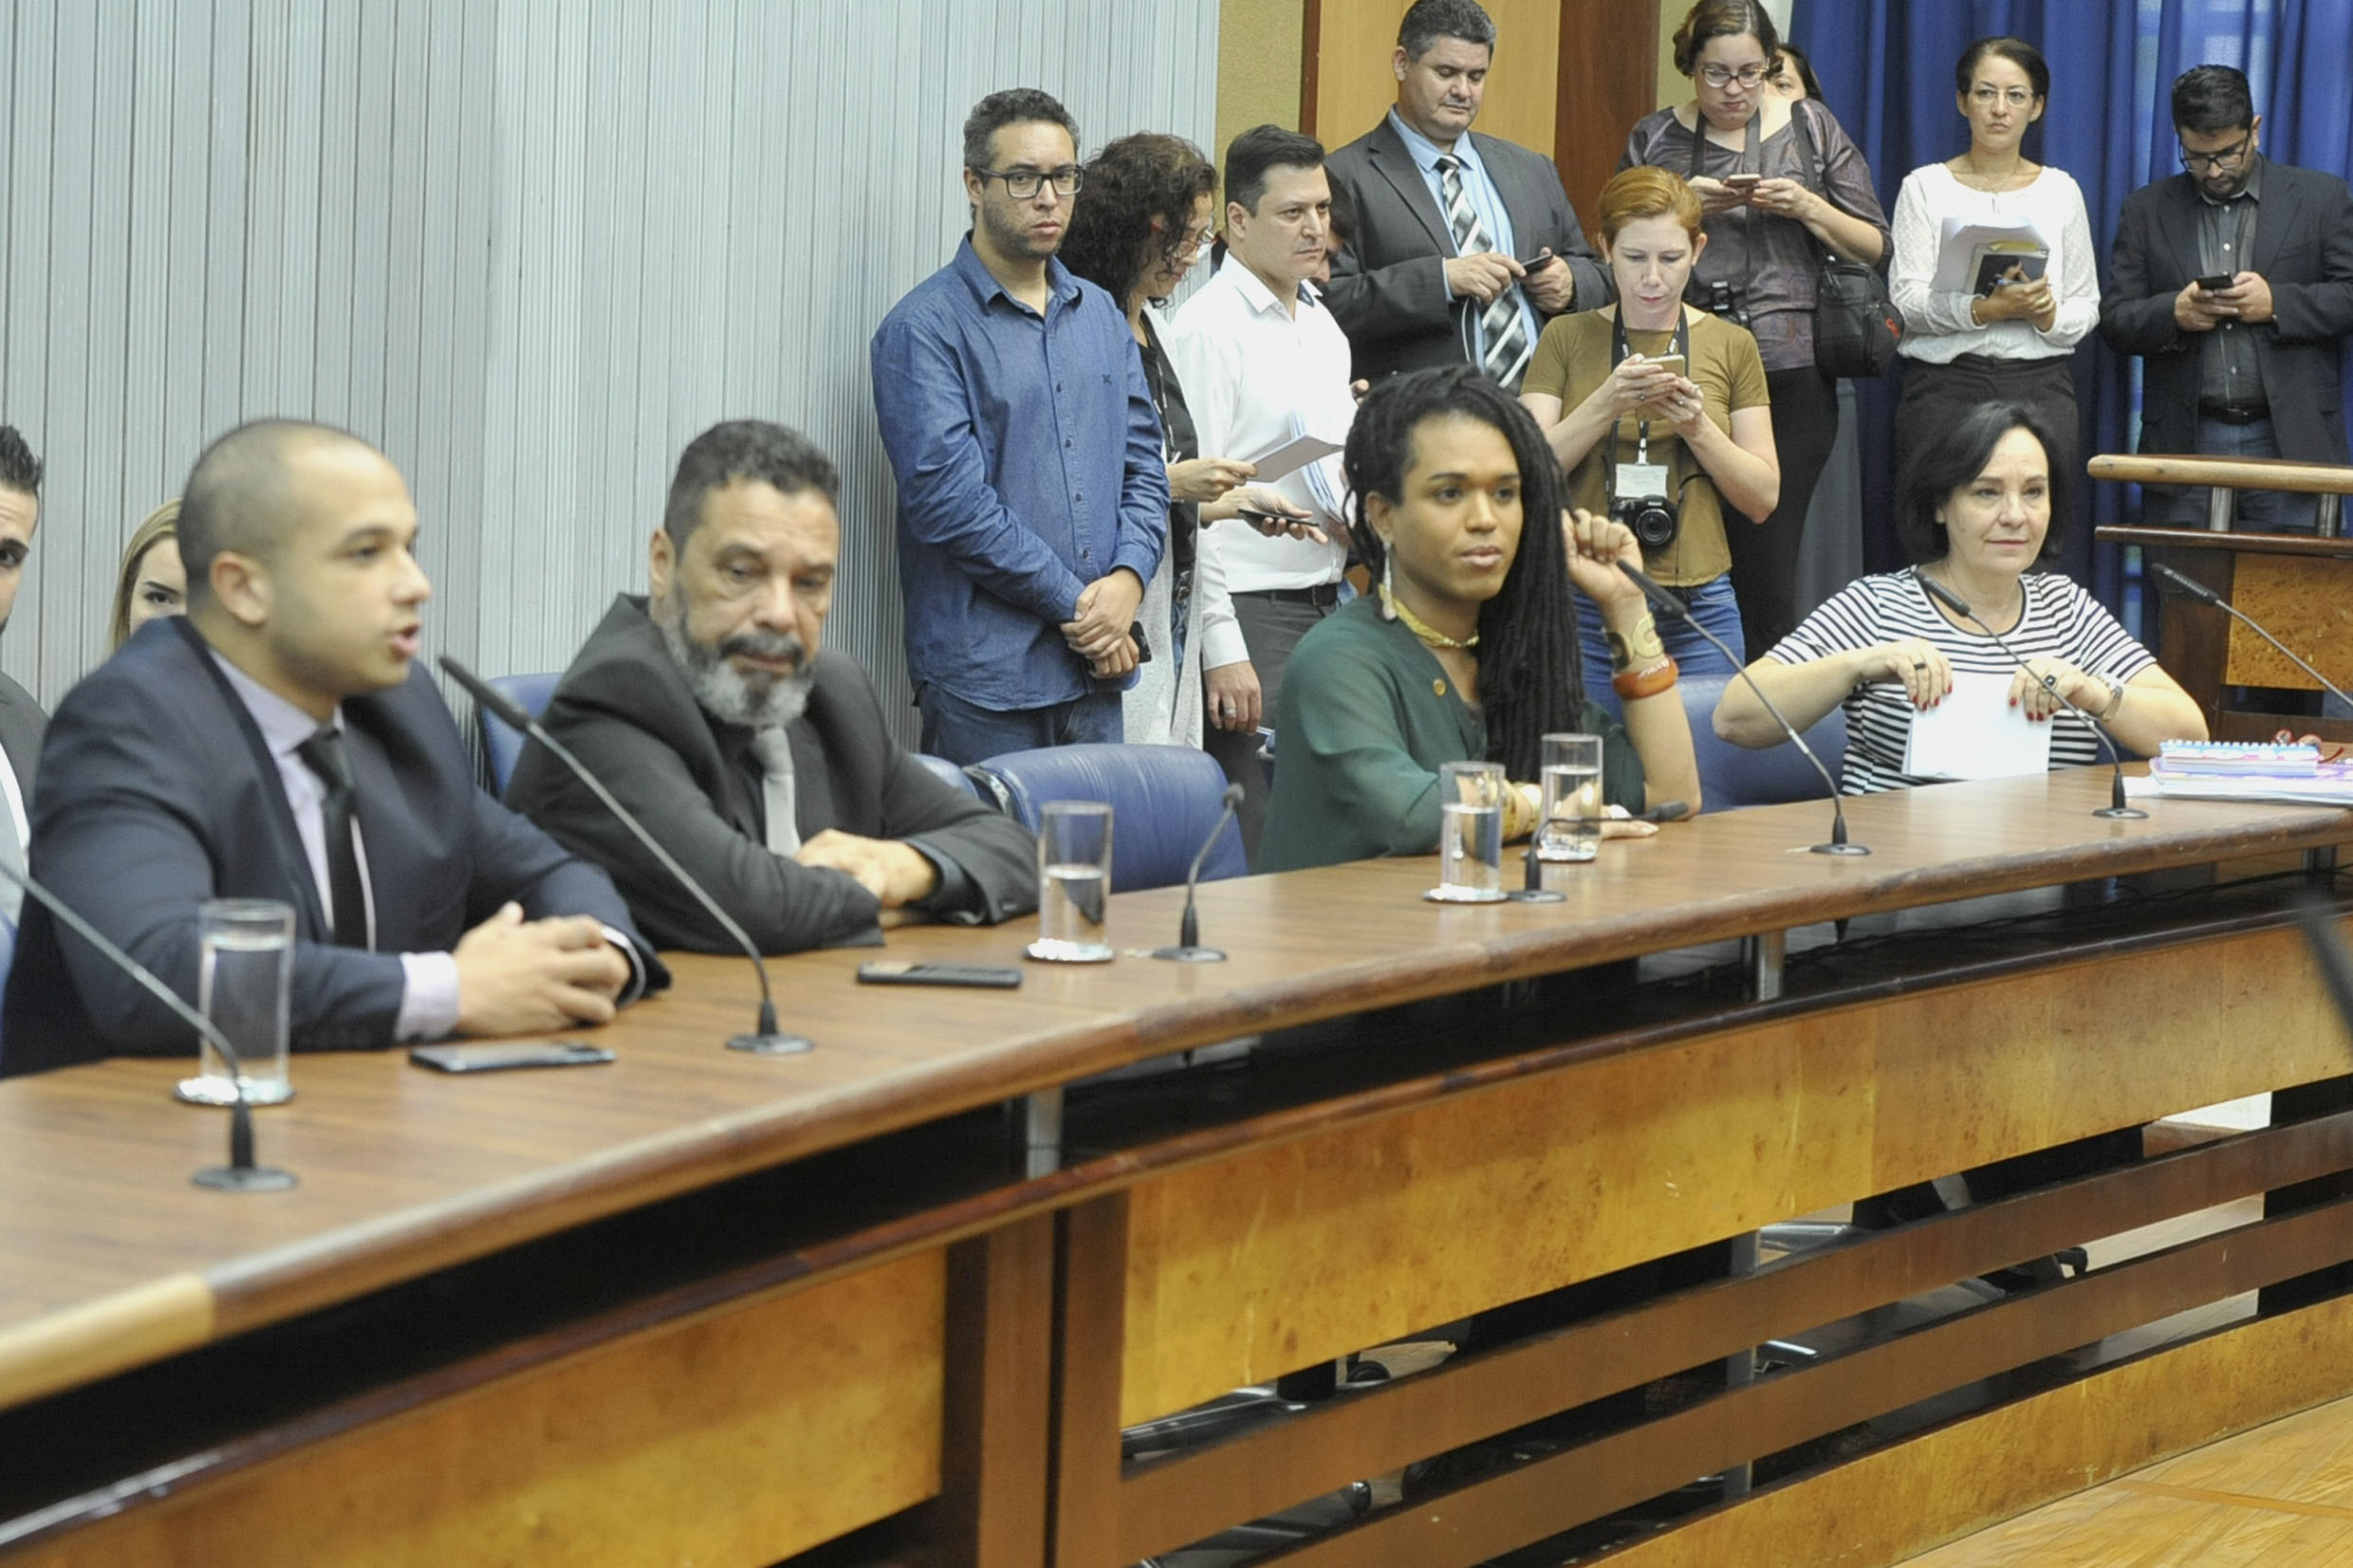 Parlamentares na comissão<a style='float:right' href='https://www3.al.sp.gov.br/repositorio/noticia/N-04-2019/fg232929.jpg' target=_blank><img src='/_img/material-file-download-white.png' width='14px' alt='Clique para baixar a imagem'></a>